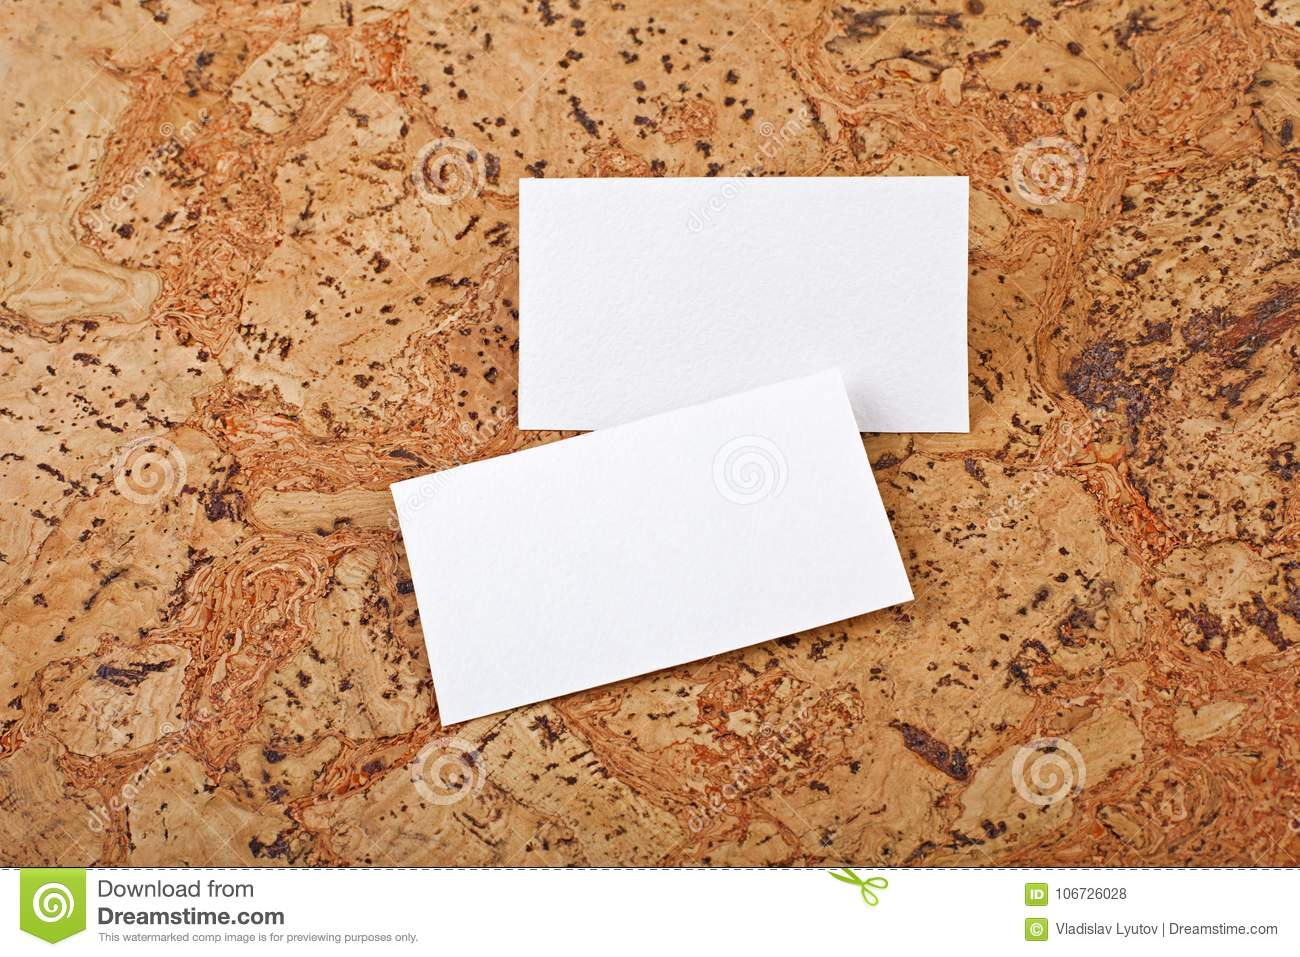 Mockup of white business cards at a cork background stock photo download mockup of white business cards at a cork background stock photo image of message colourmoves